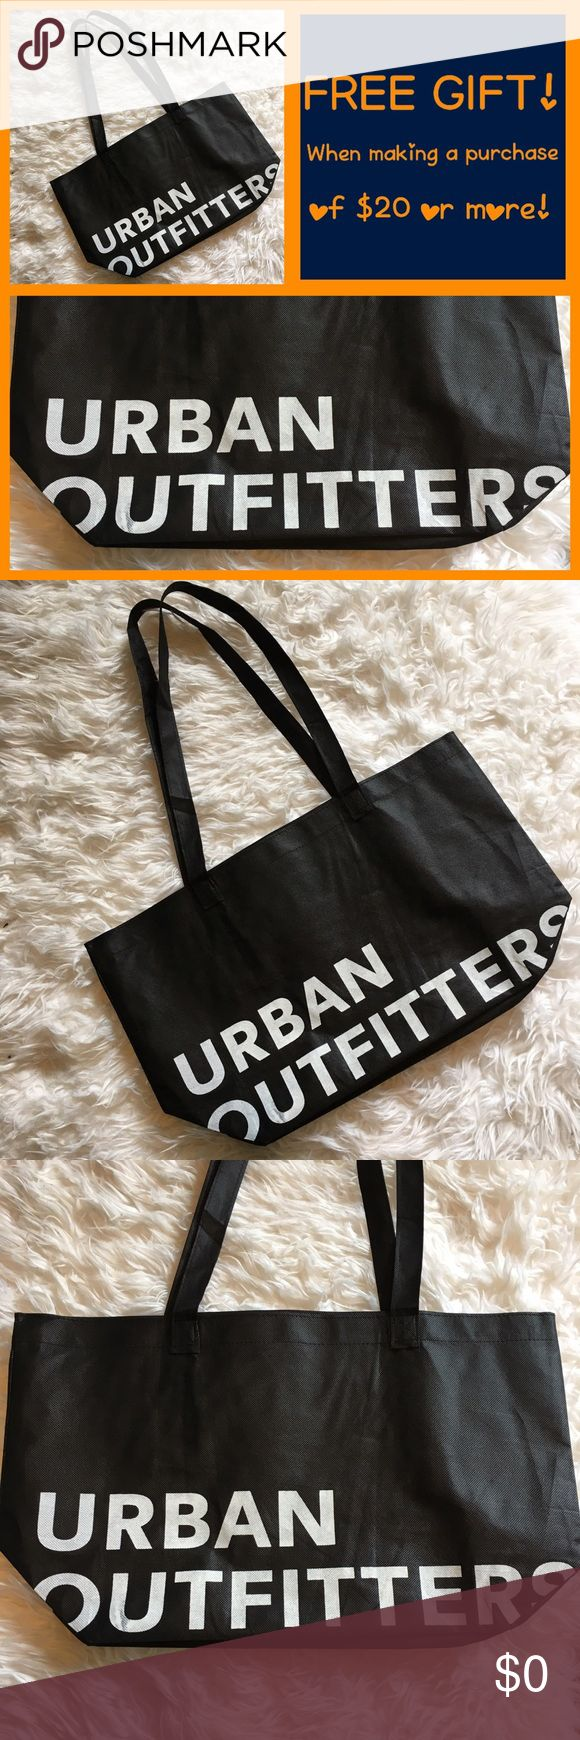 🎁New! Urban Outfitters Black & White Bag🎁 🎁FREE GIFT!🎁 MAKE A PURCHASE OF $20 OR MORE! 🌹name brand: Urban Outfitters. Long straps. Colors: black & white. Super cute! Perfect for tote bag, book bag, beach bag, grocery bag, etc. Urban Outfitters Bags